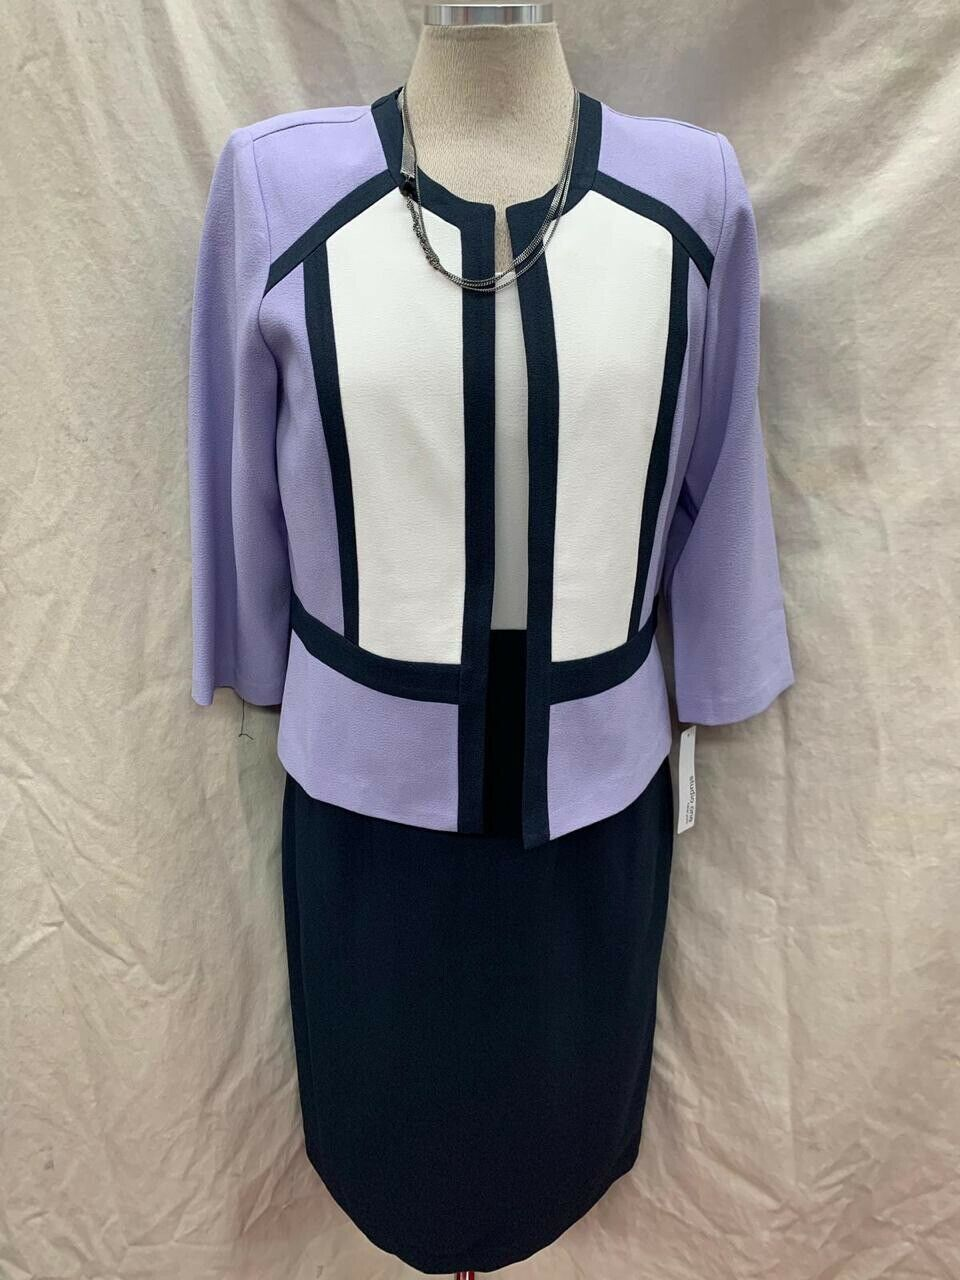 SANDRA DARREN DRESS SUIT NEW WITH TAG. SIZE 14 DRESS LENGTH 39